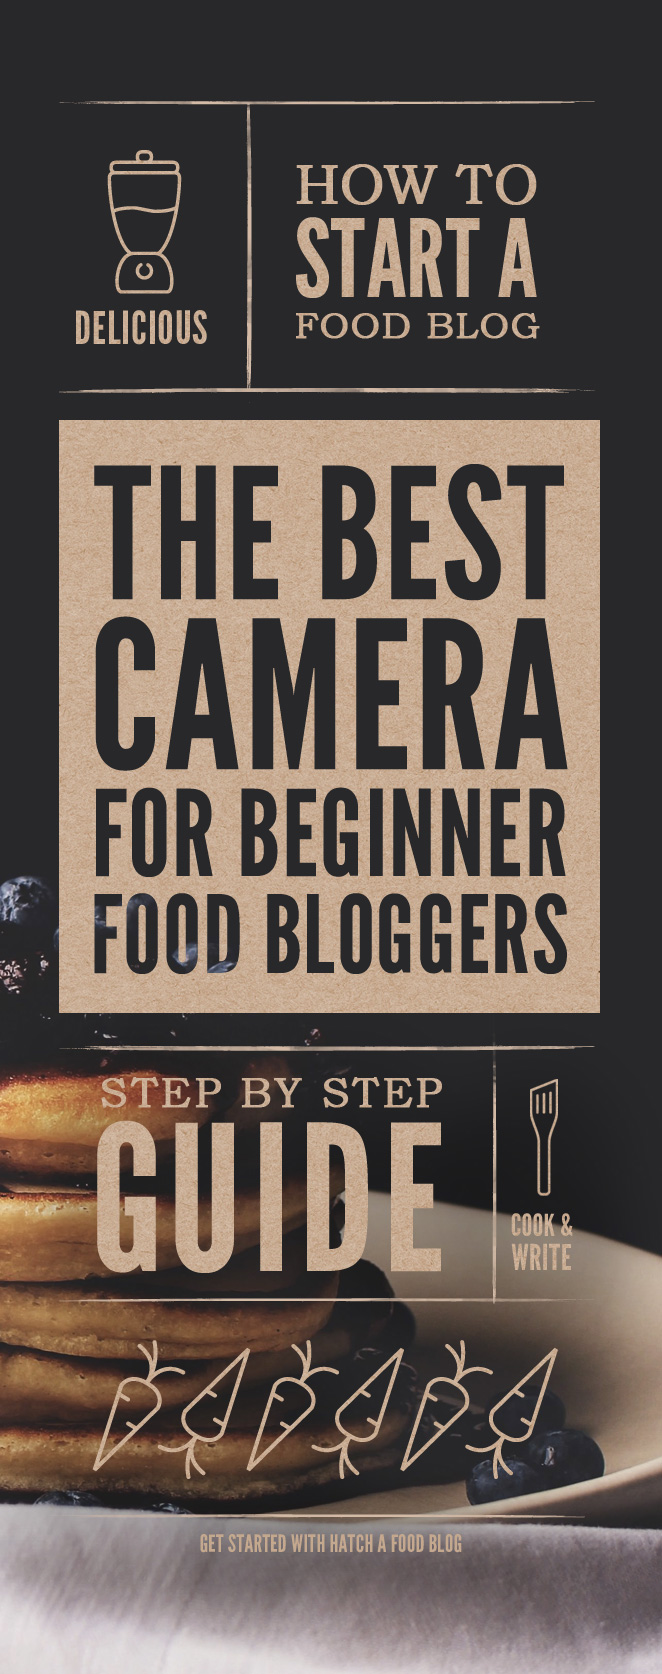 The Best Camera Food Bloggers